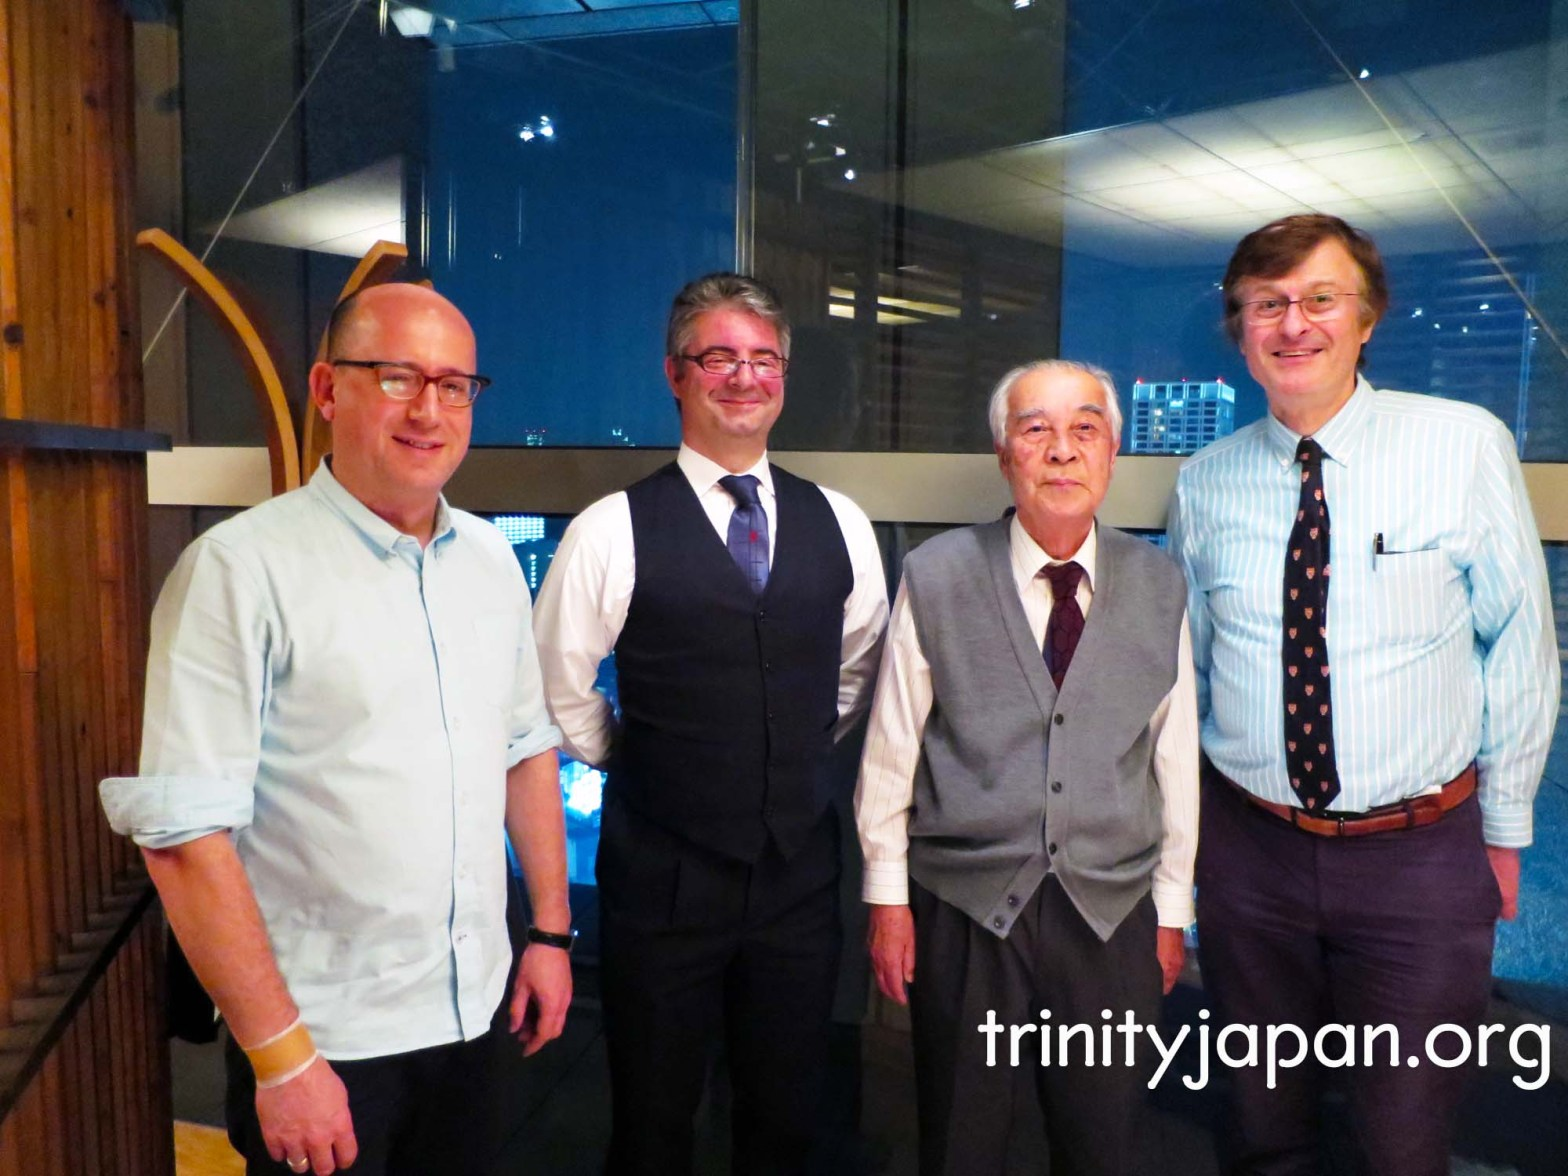 4th Trinity in Japan Society meeting in Tokyo on Friday 30 October 2015